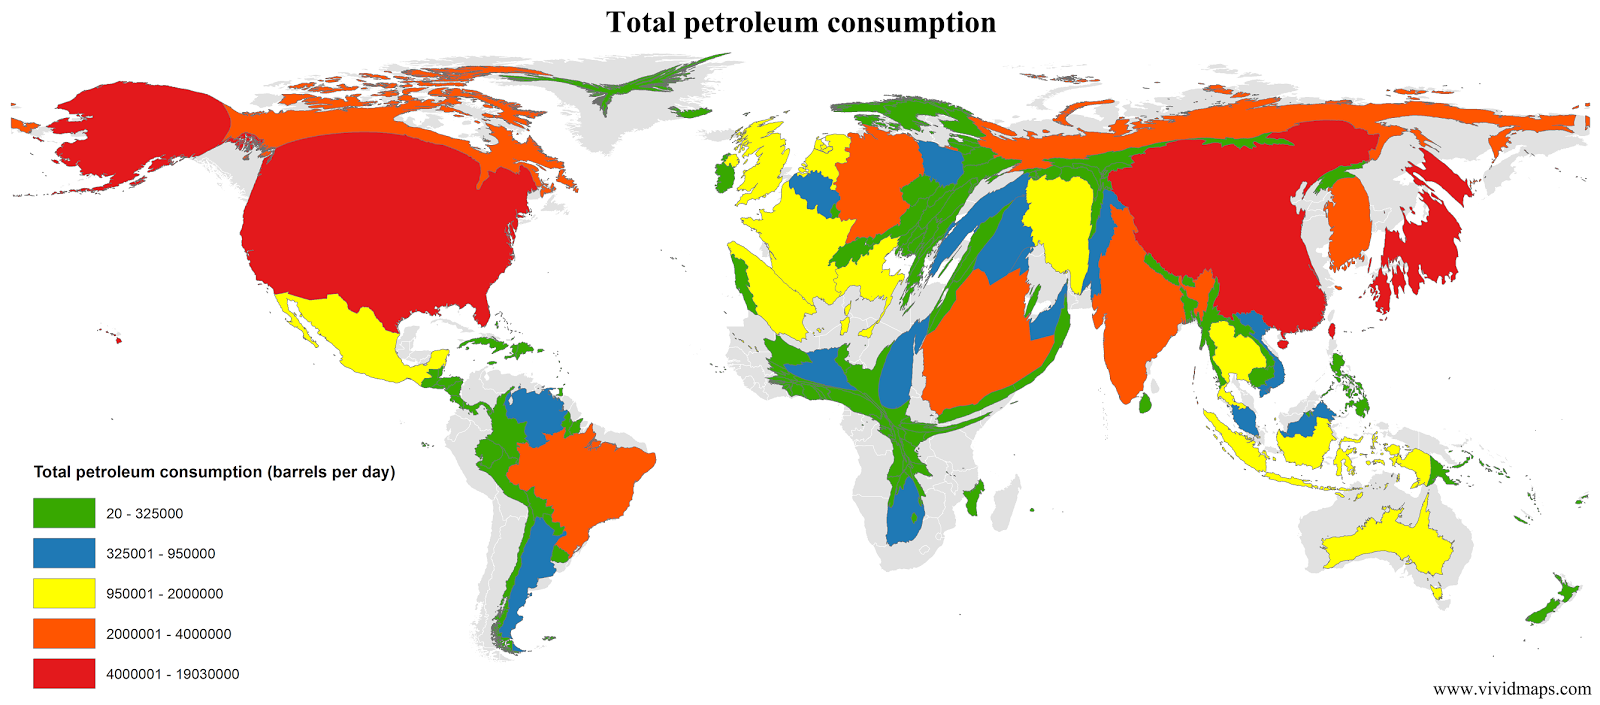 Total petroleum consumption